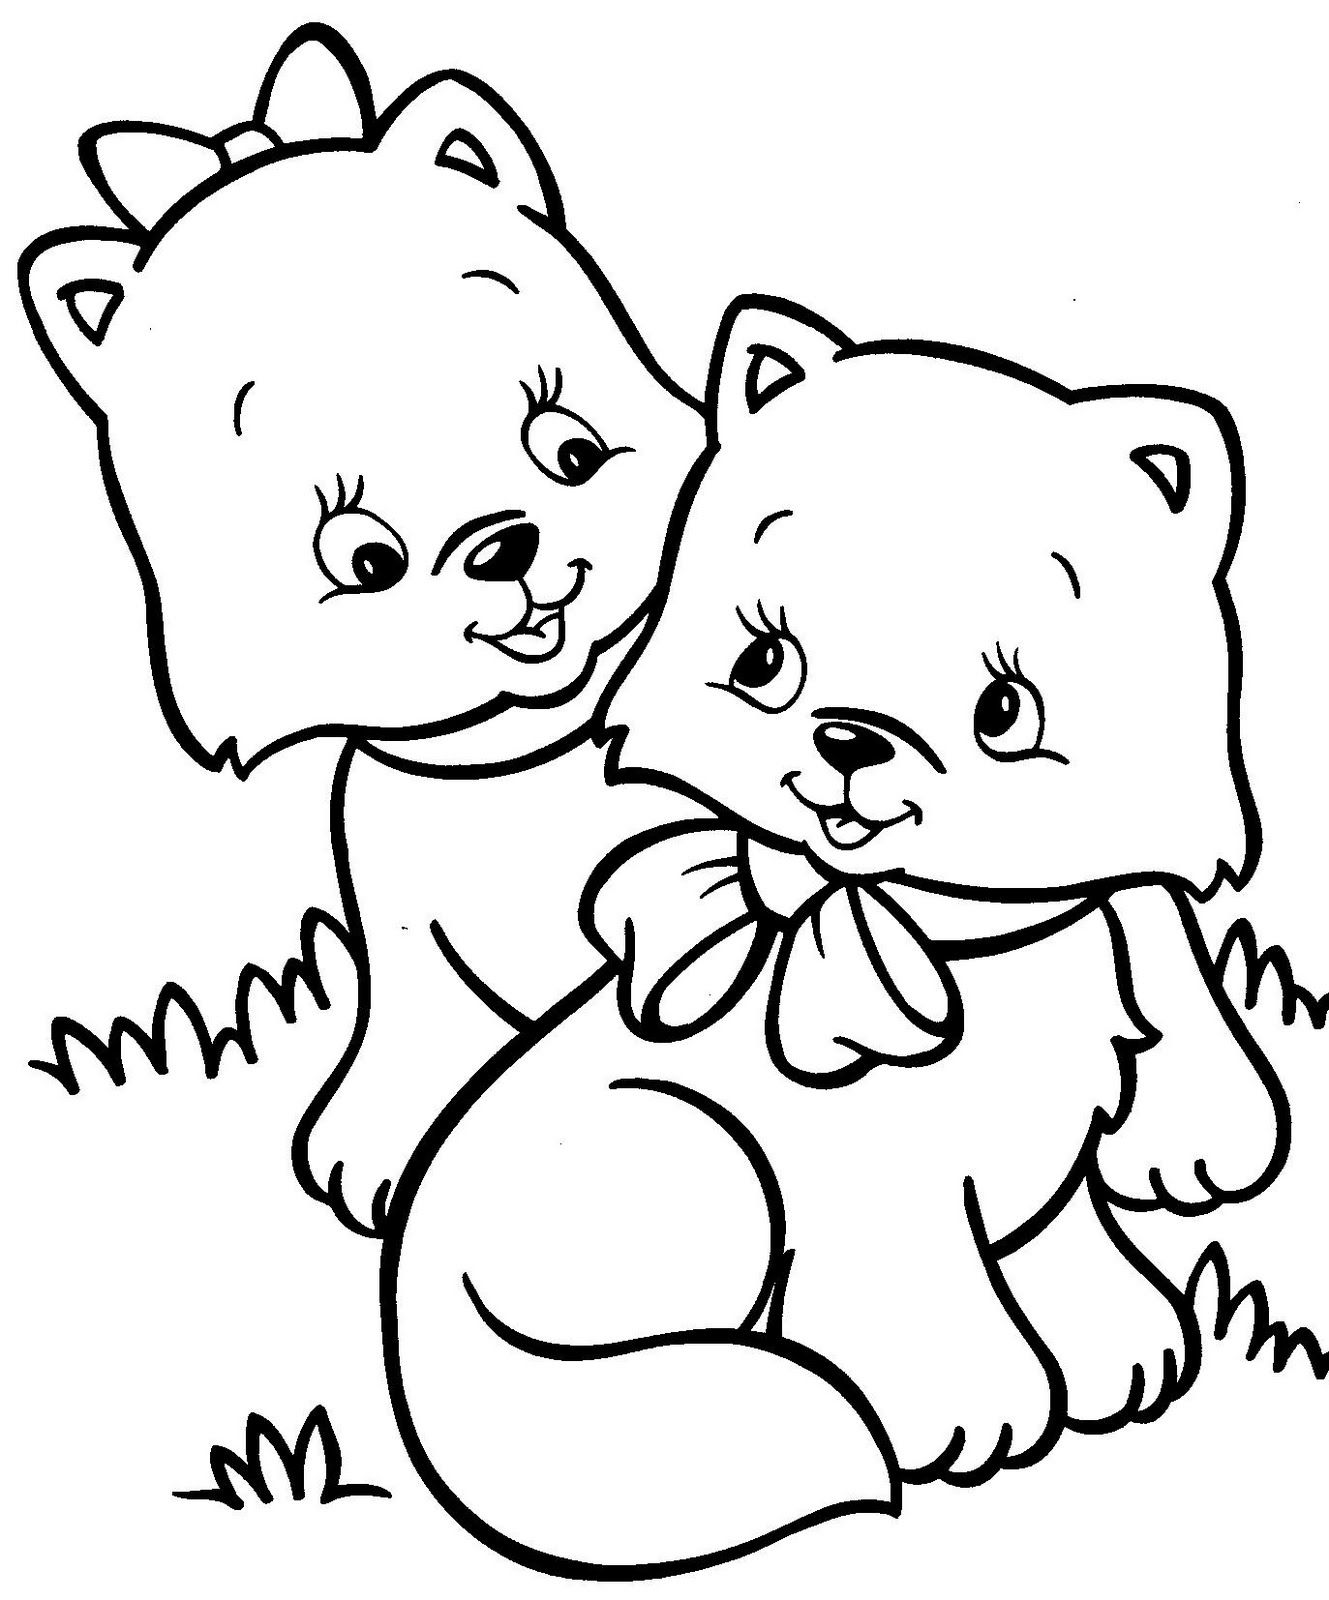 The Three Little Kittens Puppy Coloring Pages Kittens Coloring